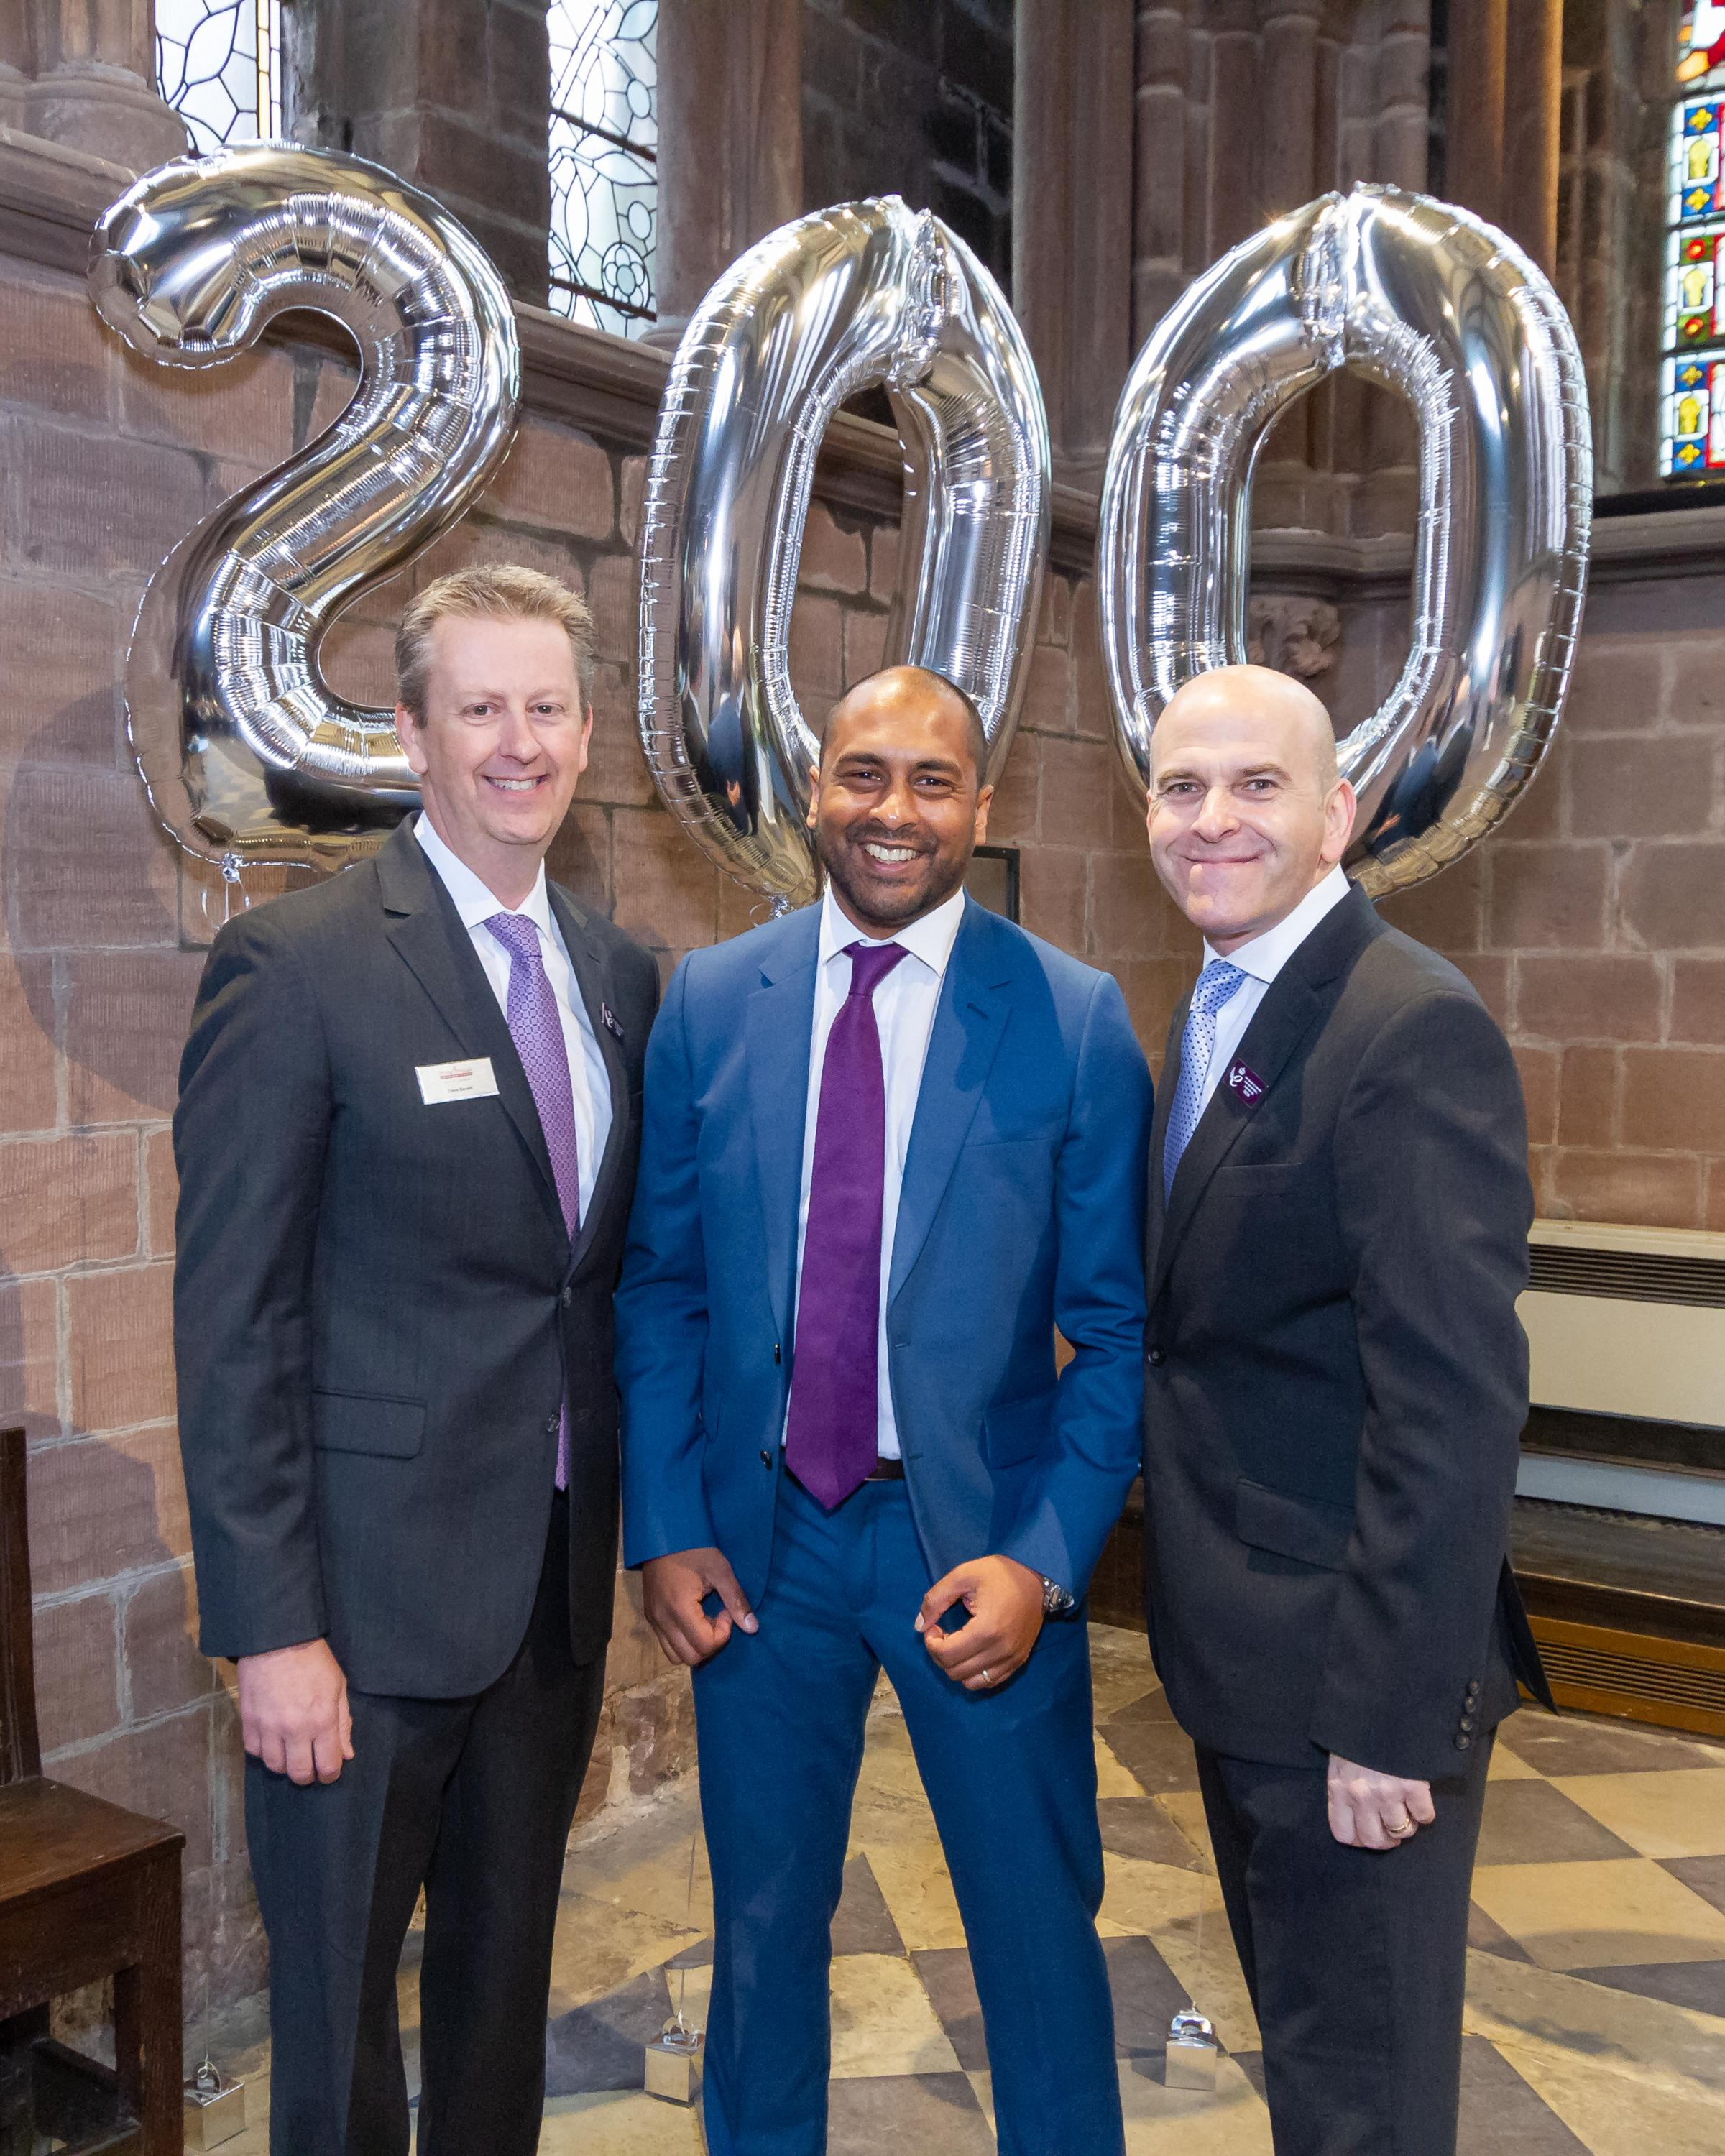 Home care firm marks 200th office opening with Chester cathedral celebration